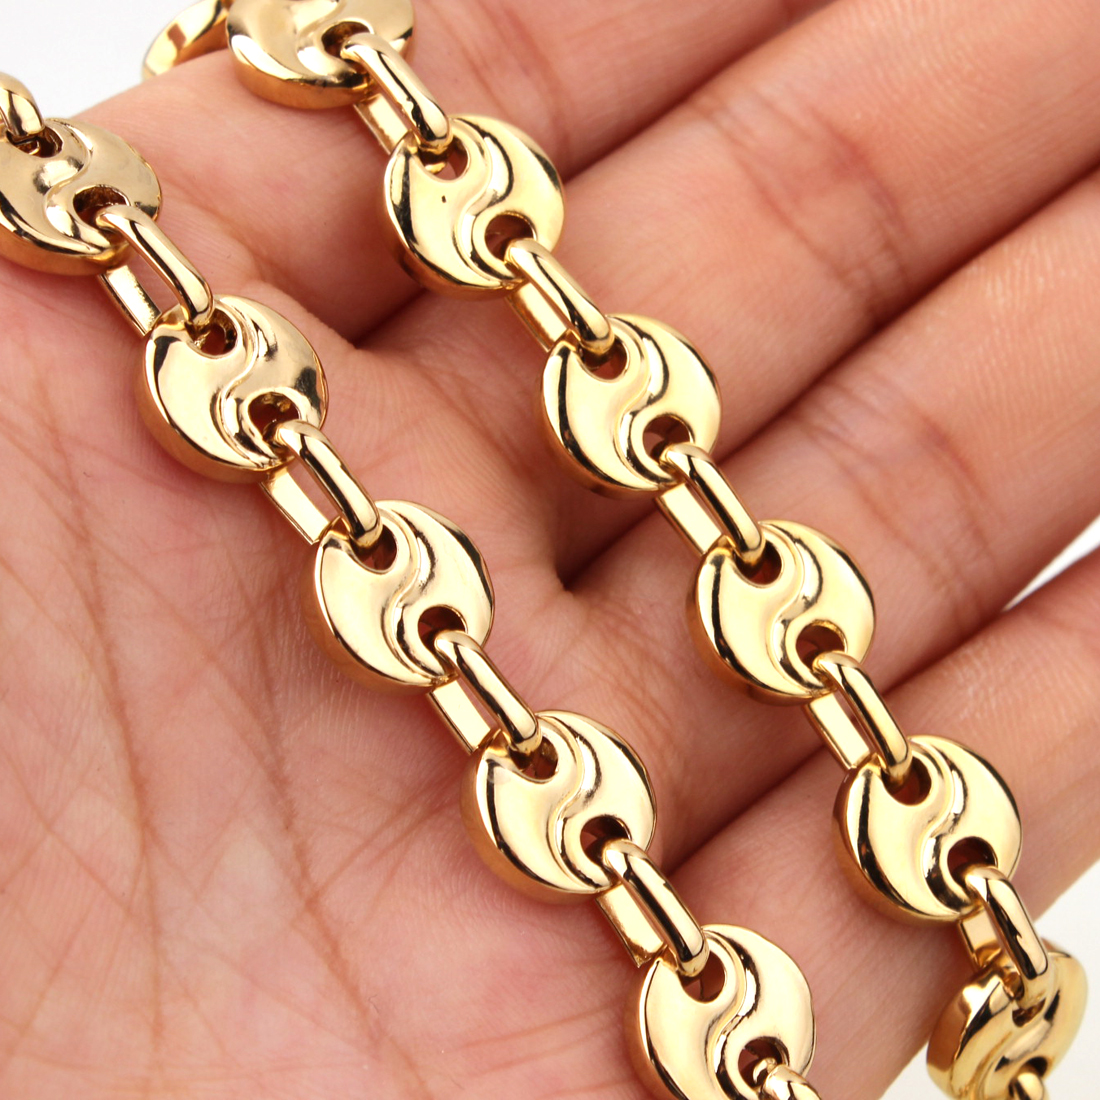 Fashion Mens Link Chain Top Gold Stainless Steel 10mm Coffee Bean Necklace Bracelet Womens 7-40 inch